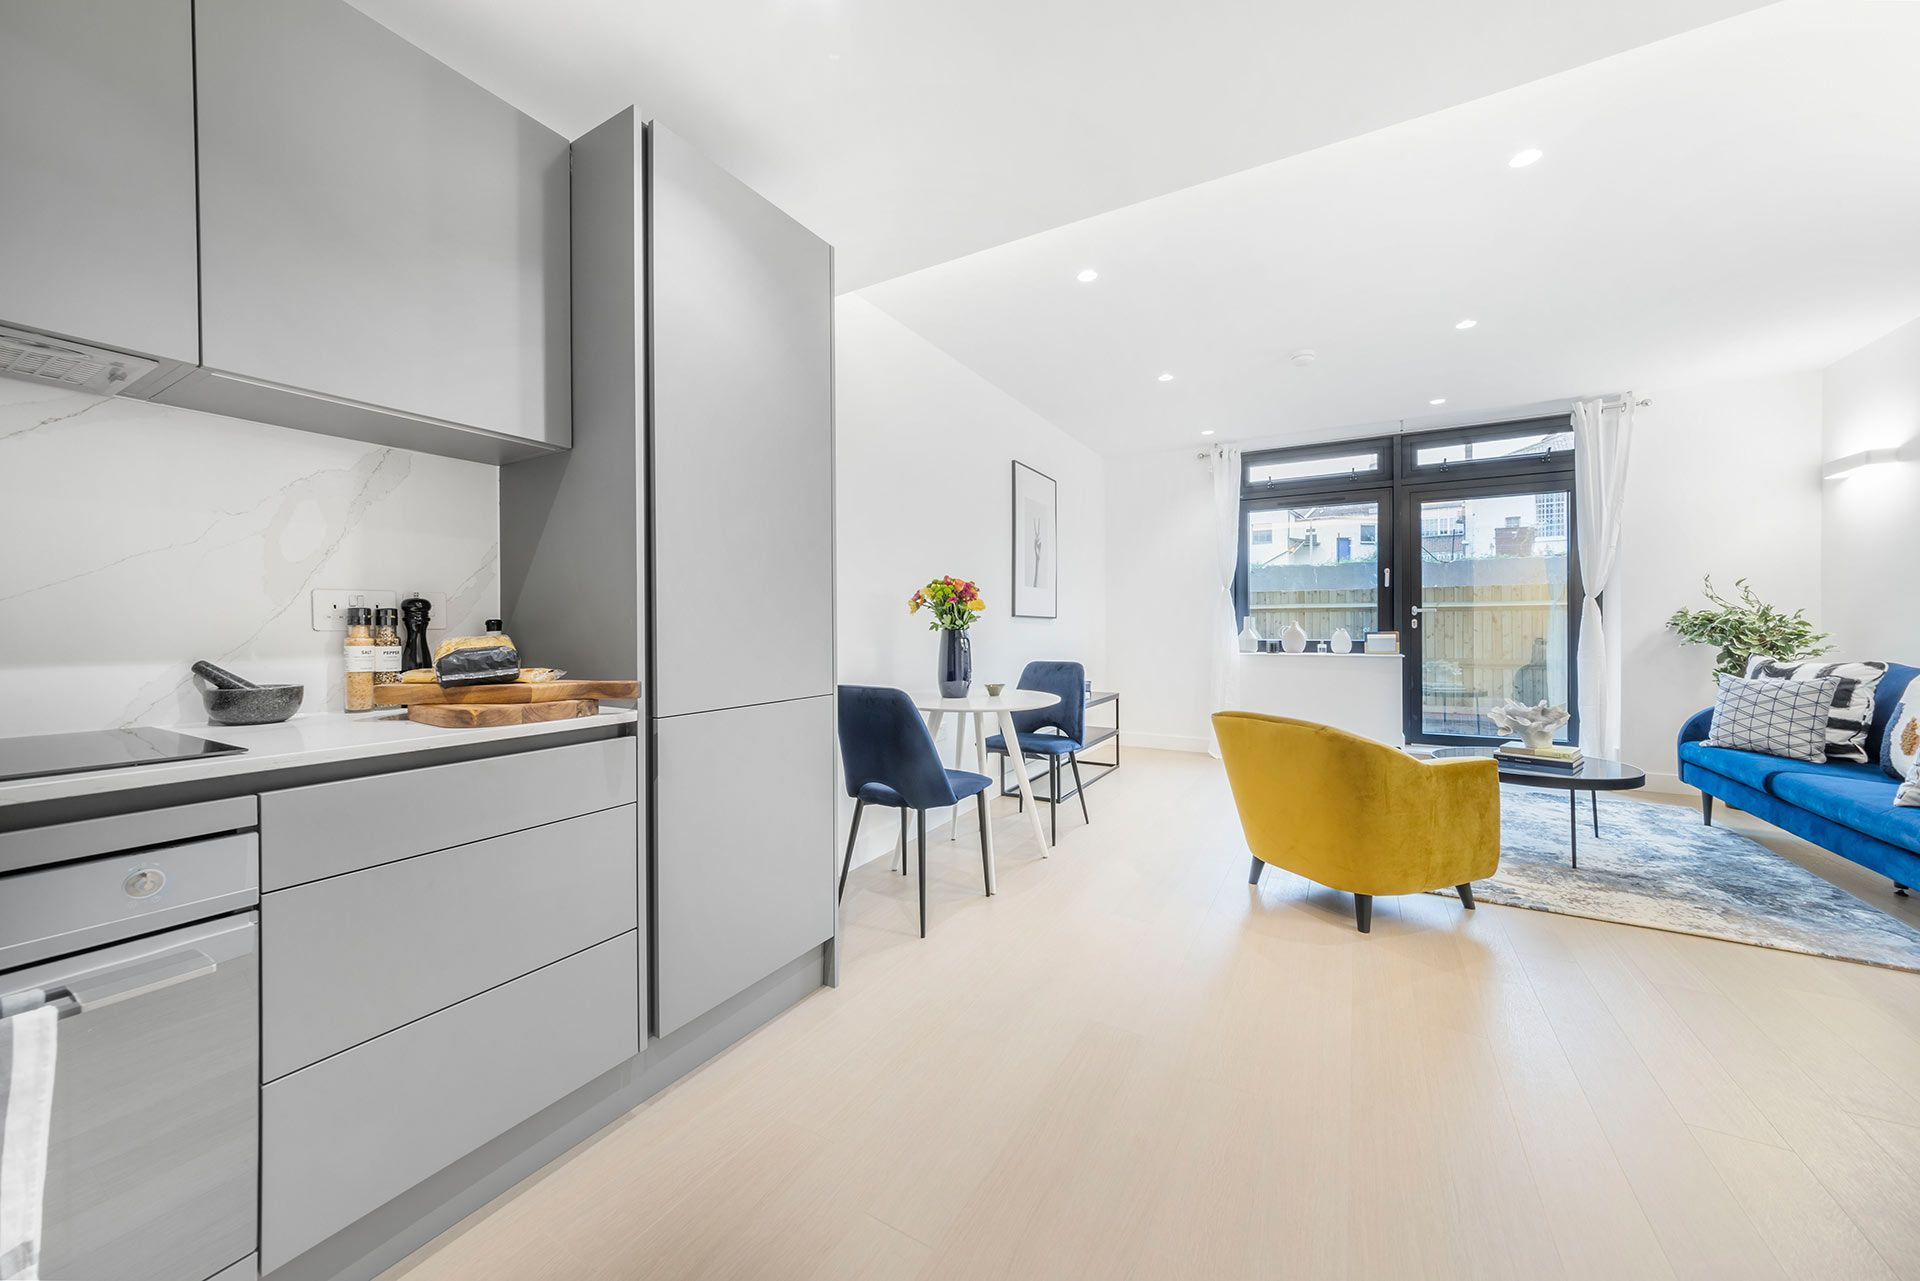 1 Bedroom apartment to rent in London SKI-VH-0007